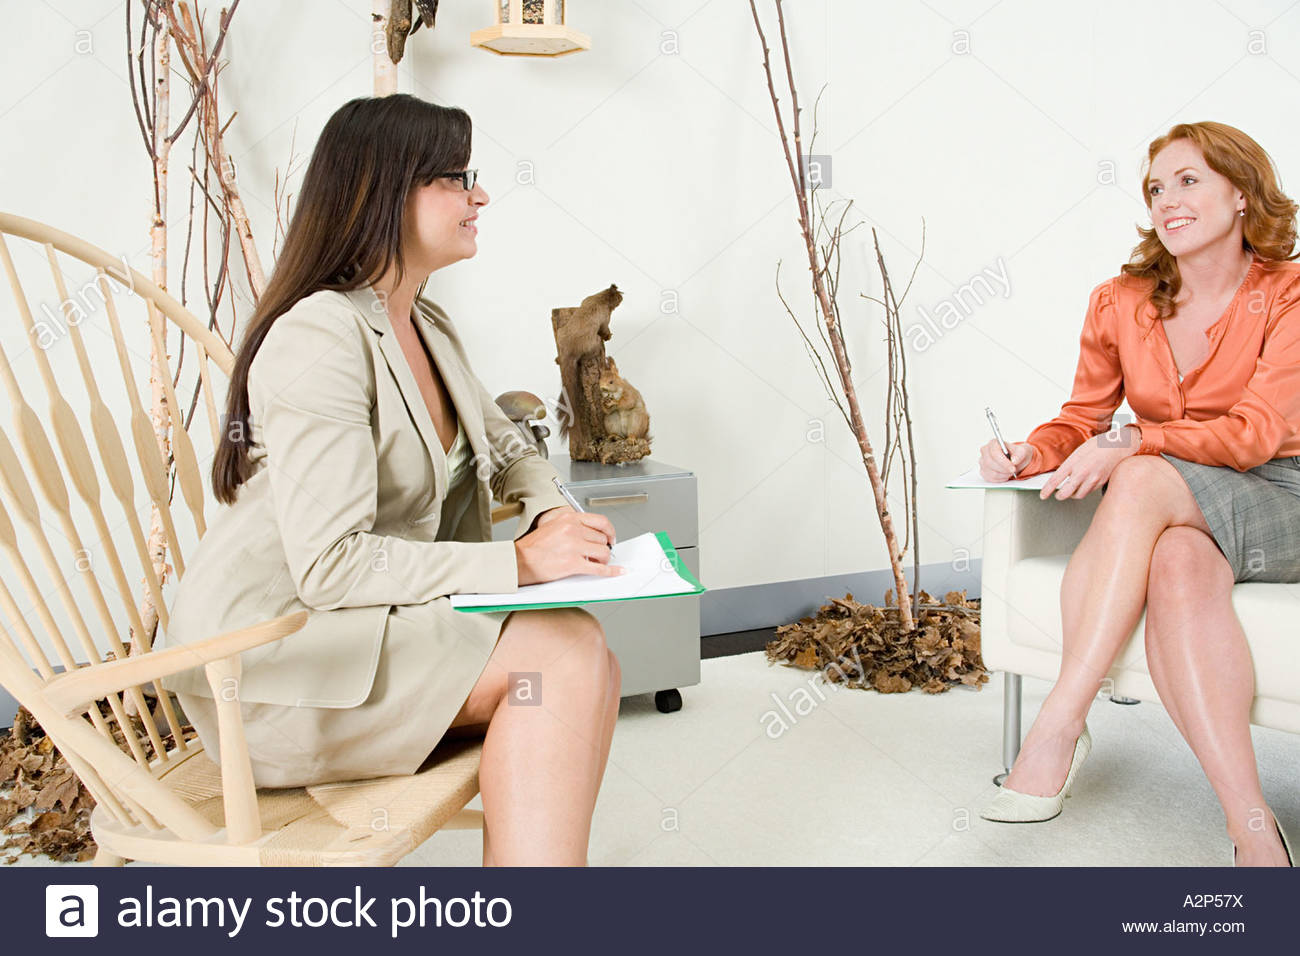 Two women in a meeting - Stock Image